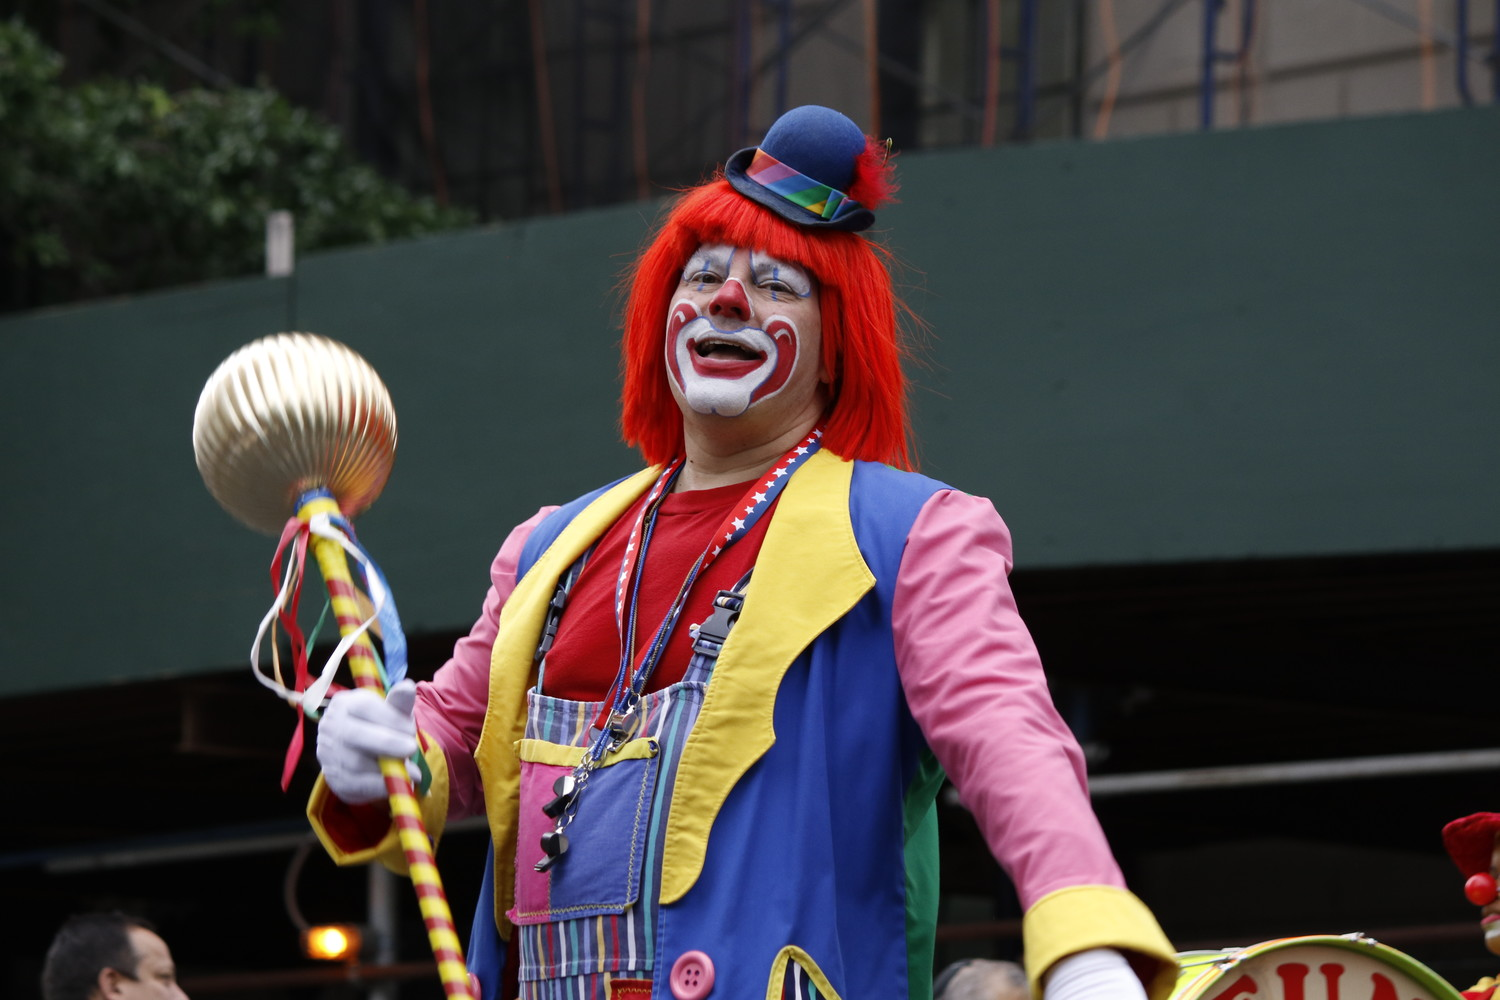 There were clowns on the Avenue, but the marchers' smiles were genuine.